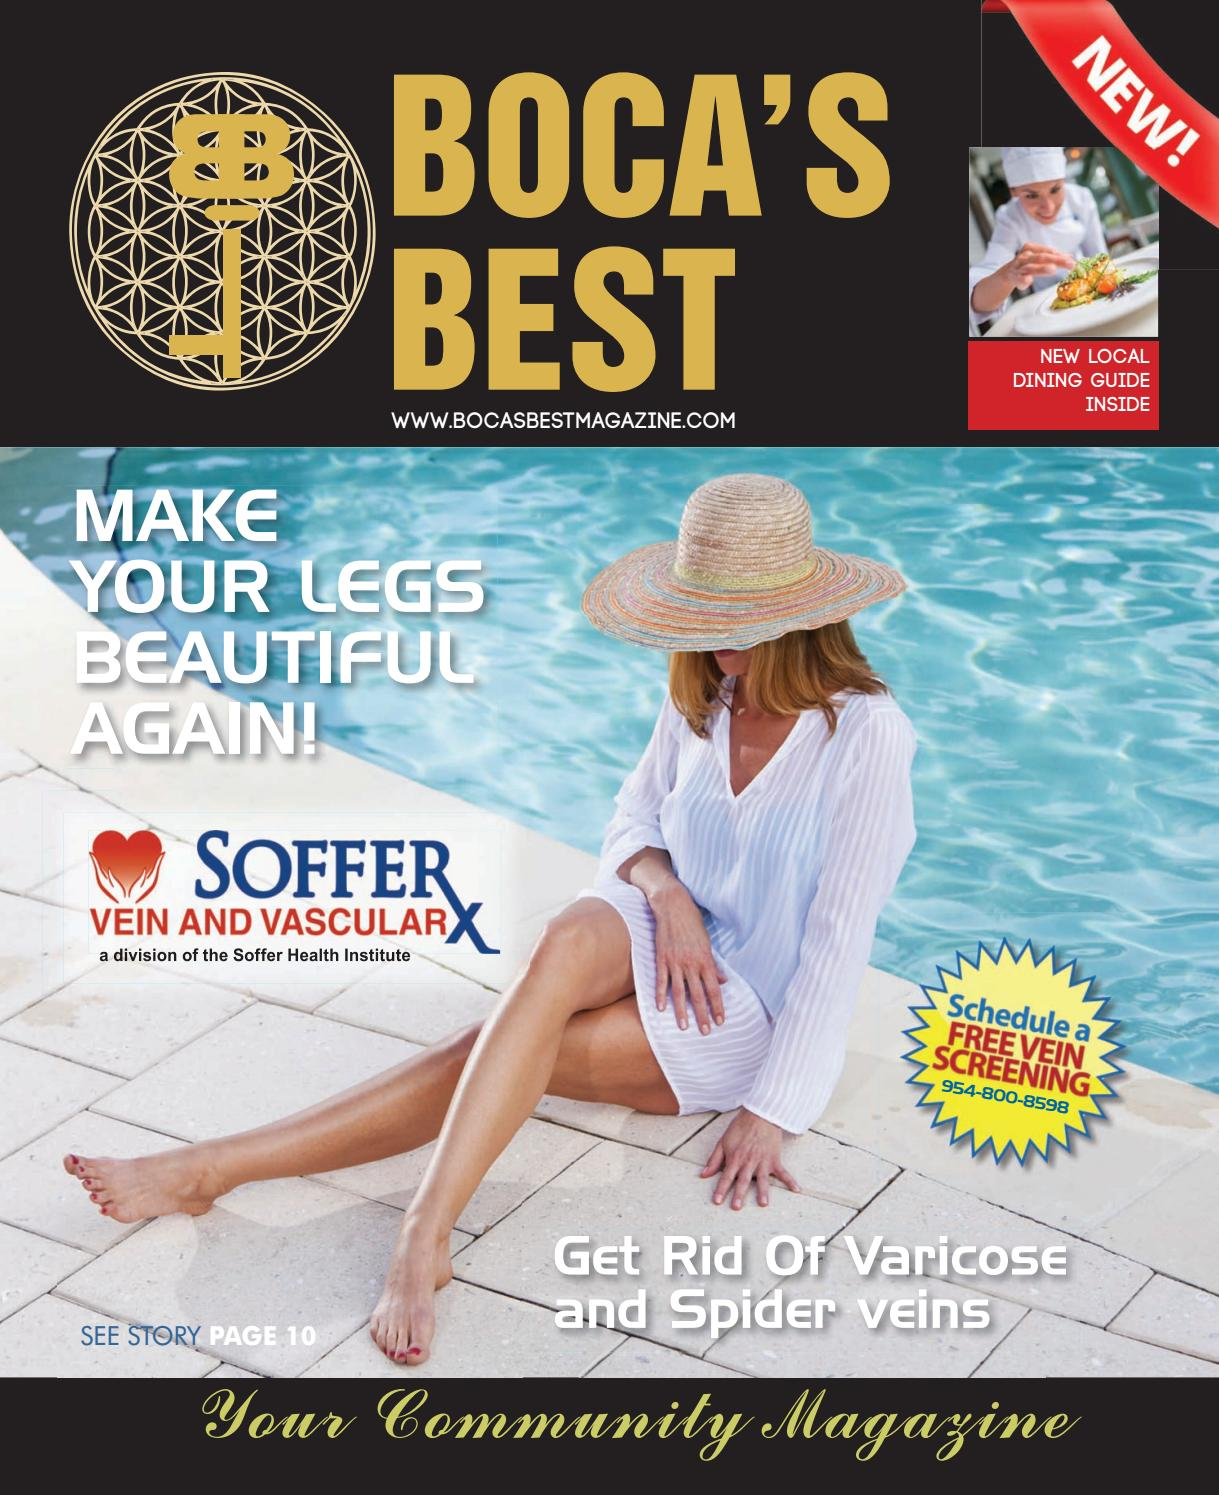 BOCA\'S BEST - DEC 2016 by CITY NEWS PUBLISHING, LLC - issuu